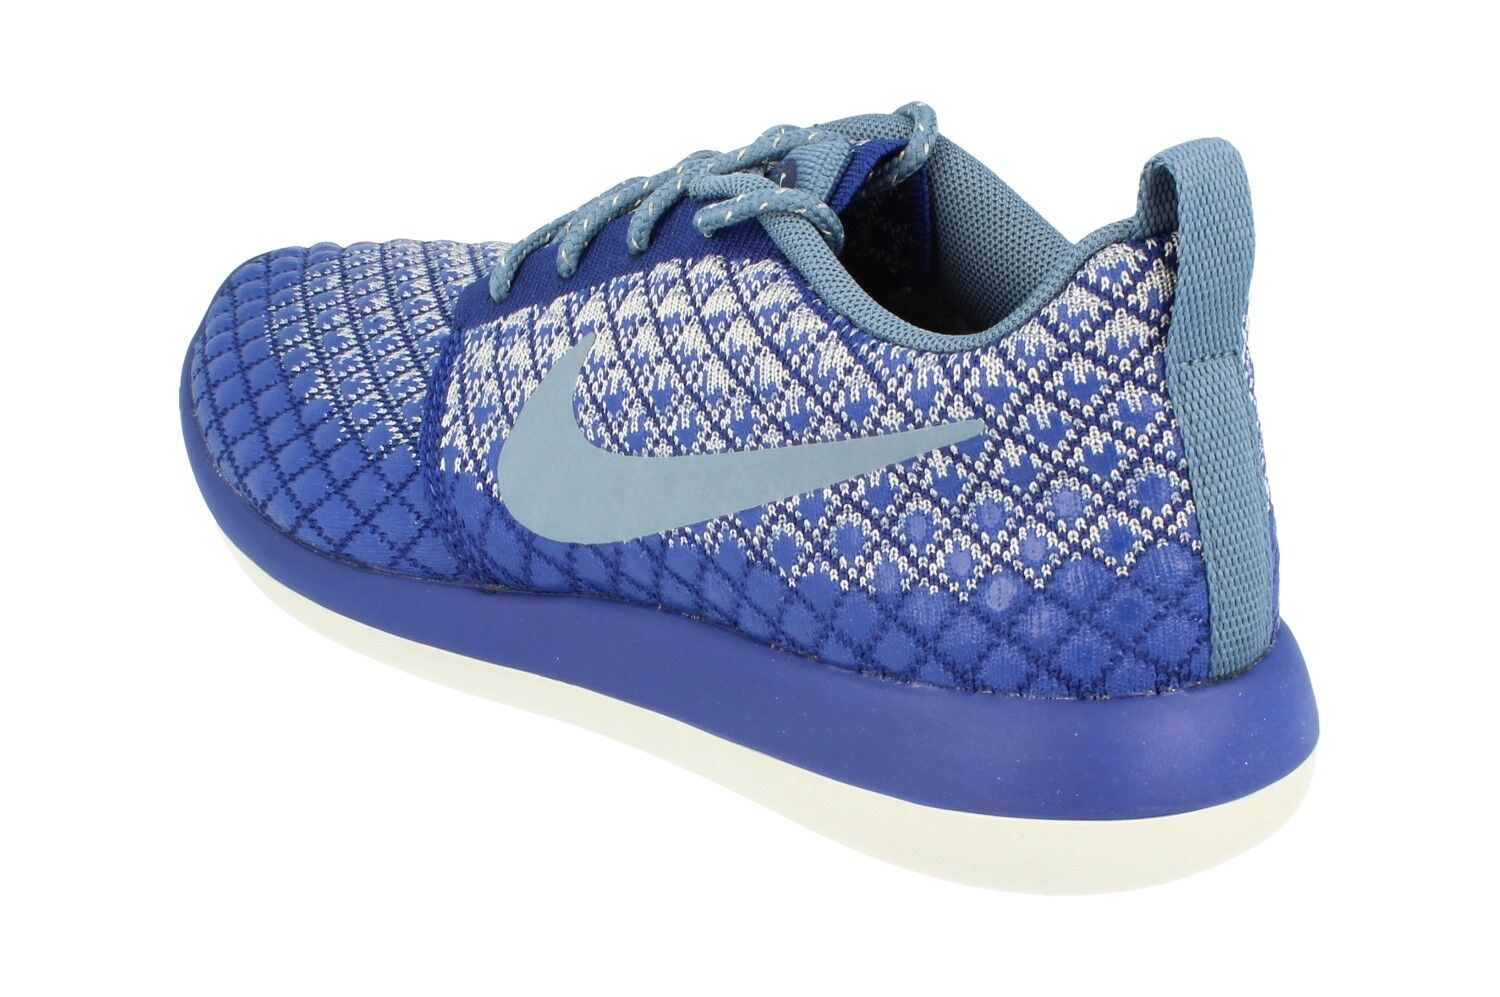 Femme Roshe Two Flyknit chaussures 365 fonctionnement Trainers 861706 Baskets chaussures Flyknit 400 0de16e